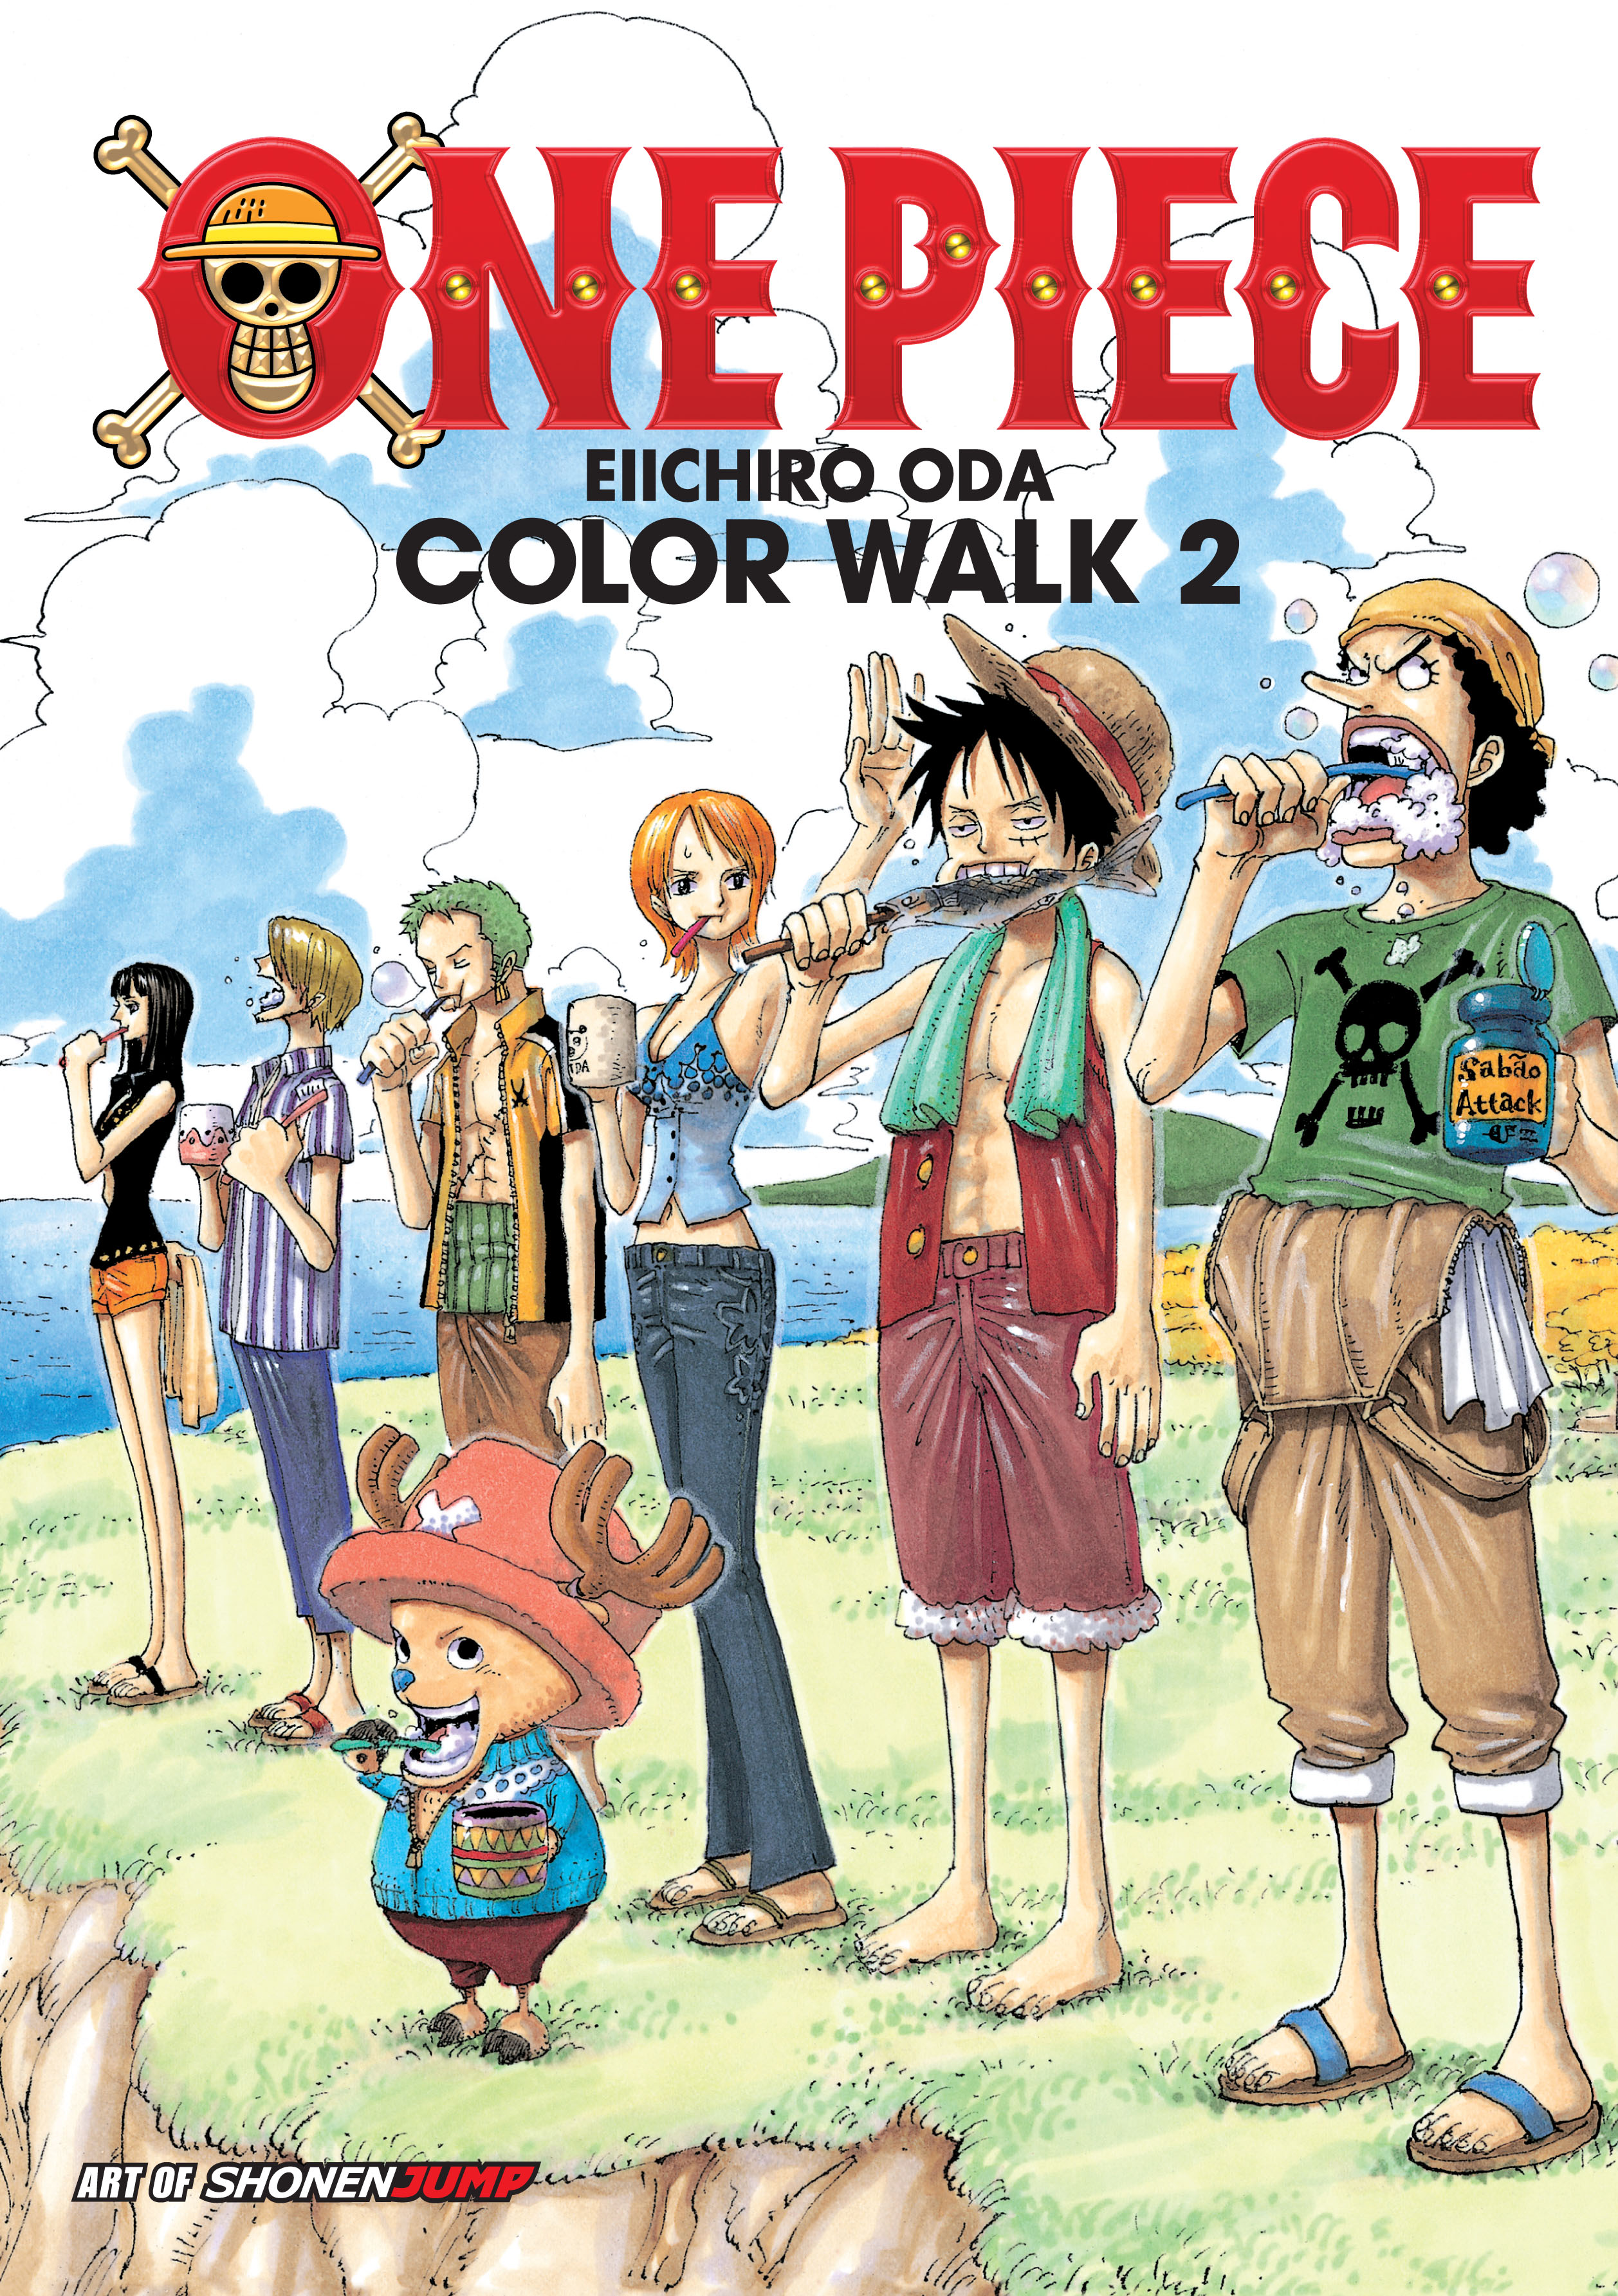 Art color book - Book Cover Image Jpg One Piece Color Walk Art Book Vol 2